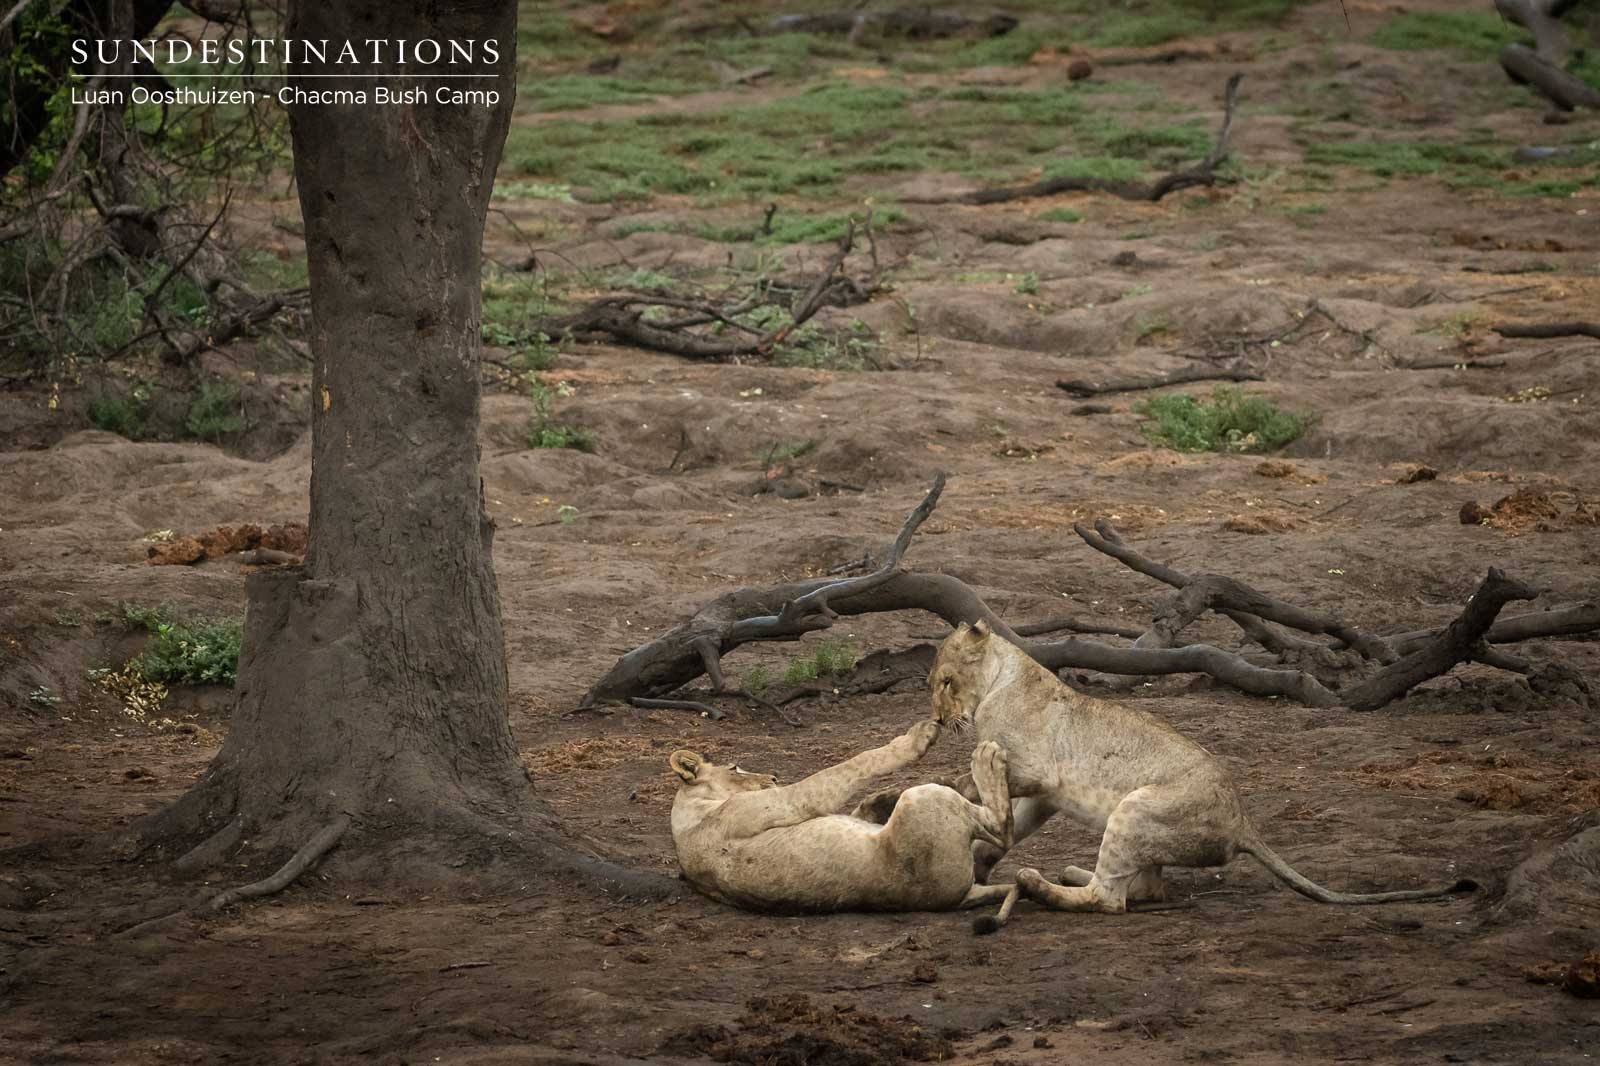 Chacma Lion Cubs Play with Barn Owl and No One Gives a Hoot